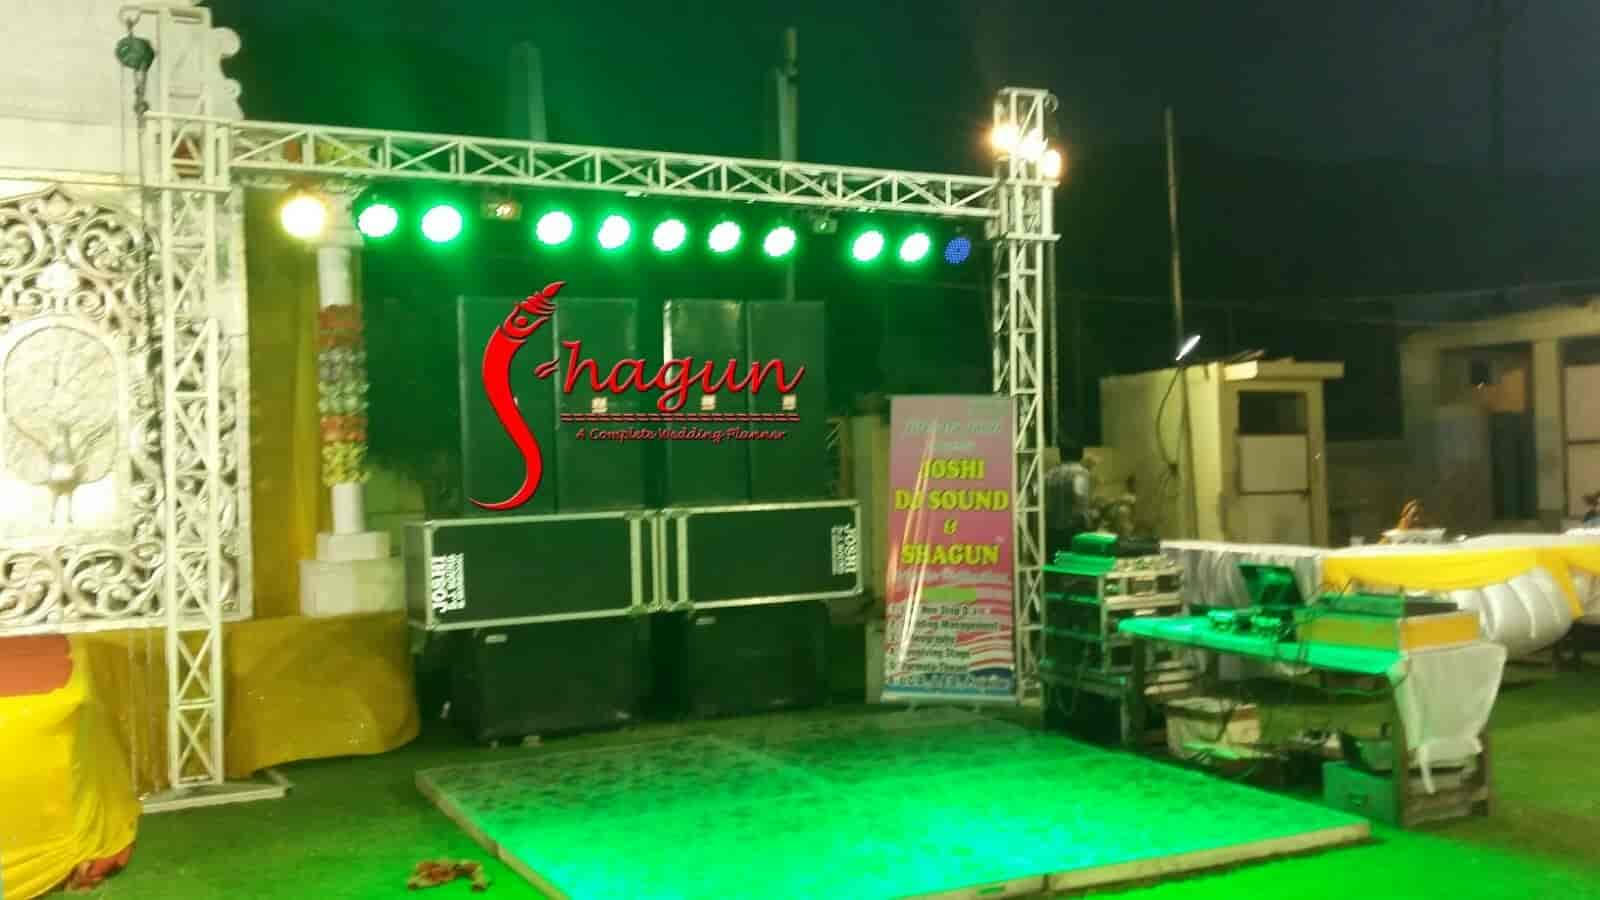 S k dj sound system photos ajmer pictures images gallery s k dj sound system photos ajmer sound systems on hire thecheapjerseys Choice Image